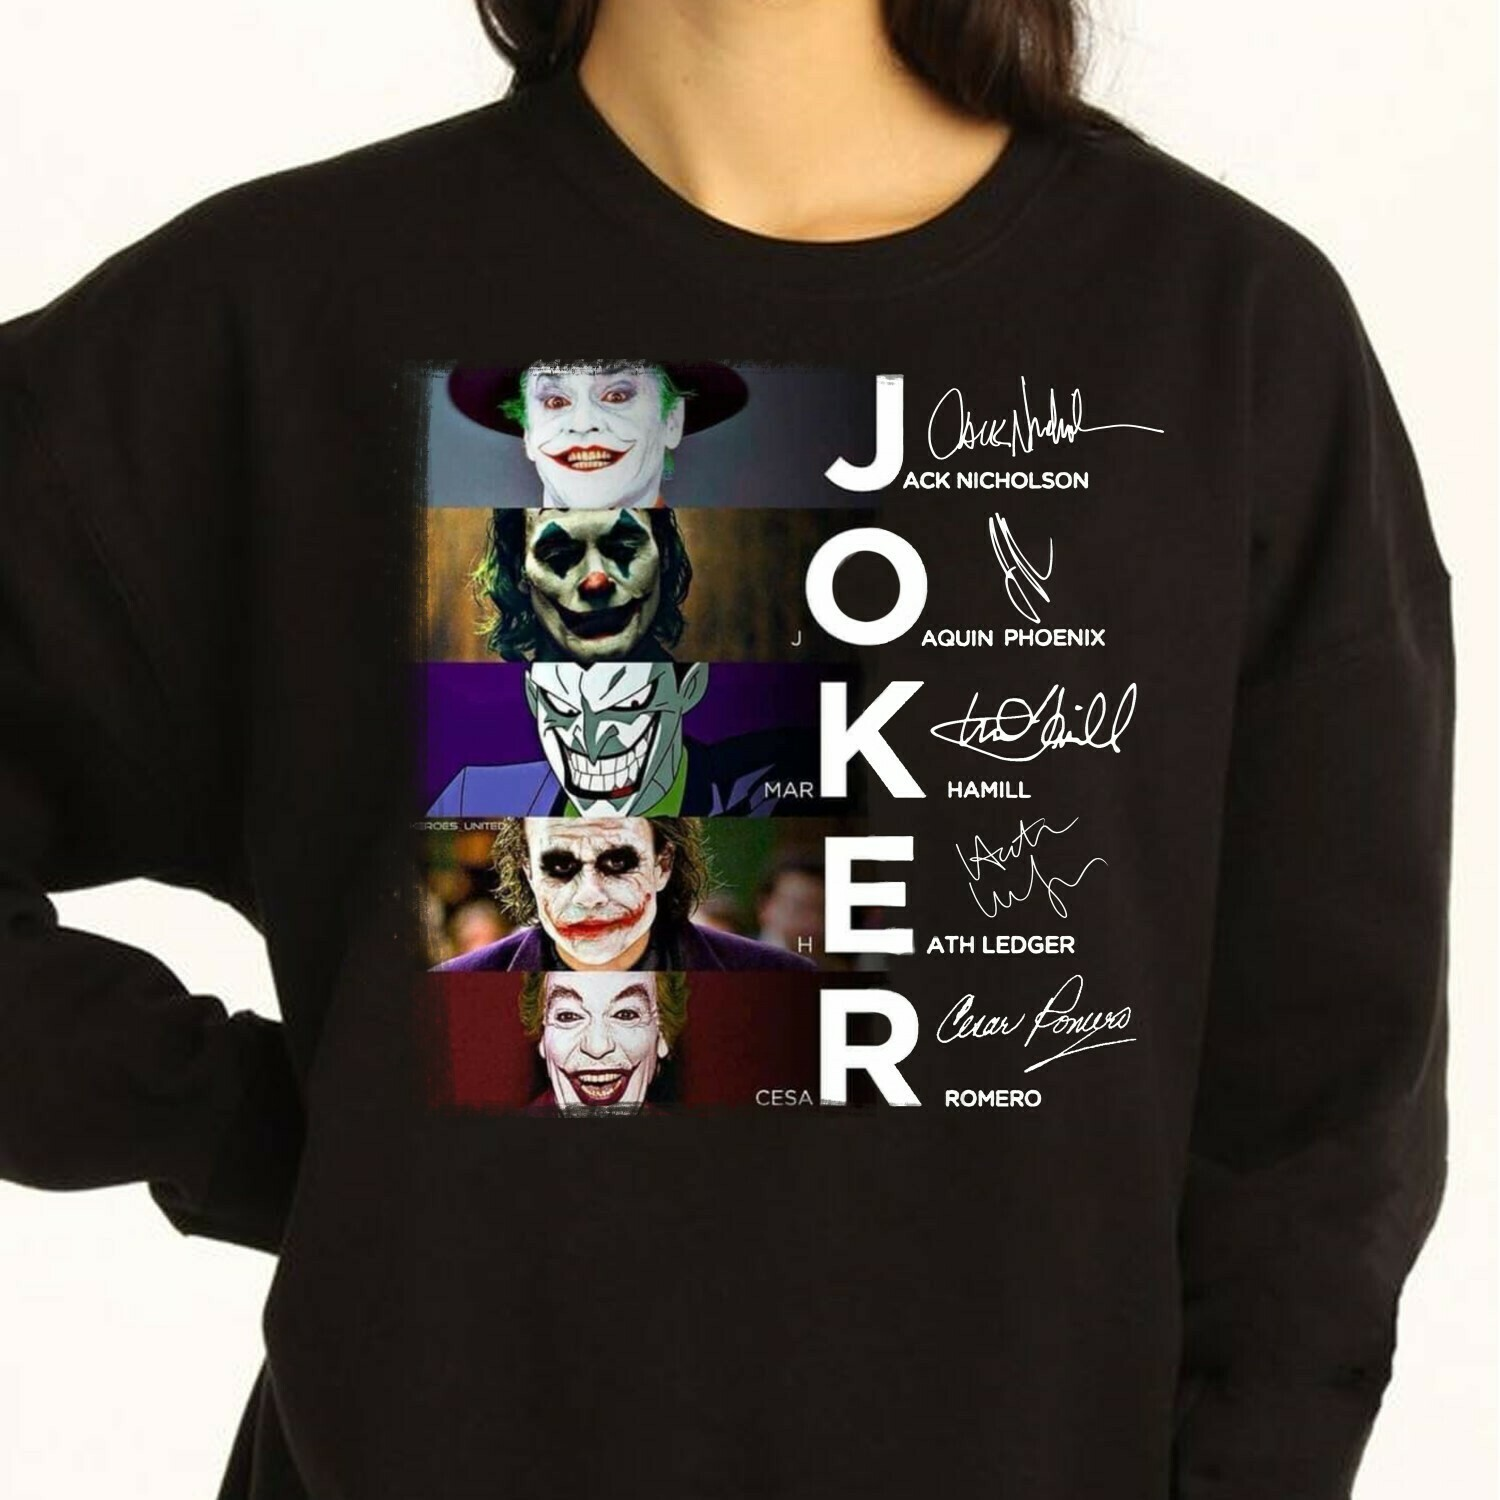 Joker All Version Signature Great Gifts Idea For Fans Here Comes Your Favorite Super Villain Halloween Horror Movie Mashup T Shirt Long Sleeve Sweatshirt Hoodie Jolly Family Gifts